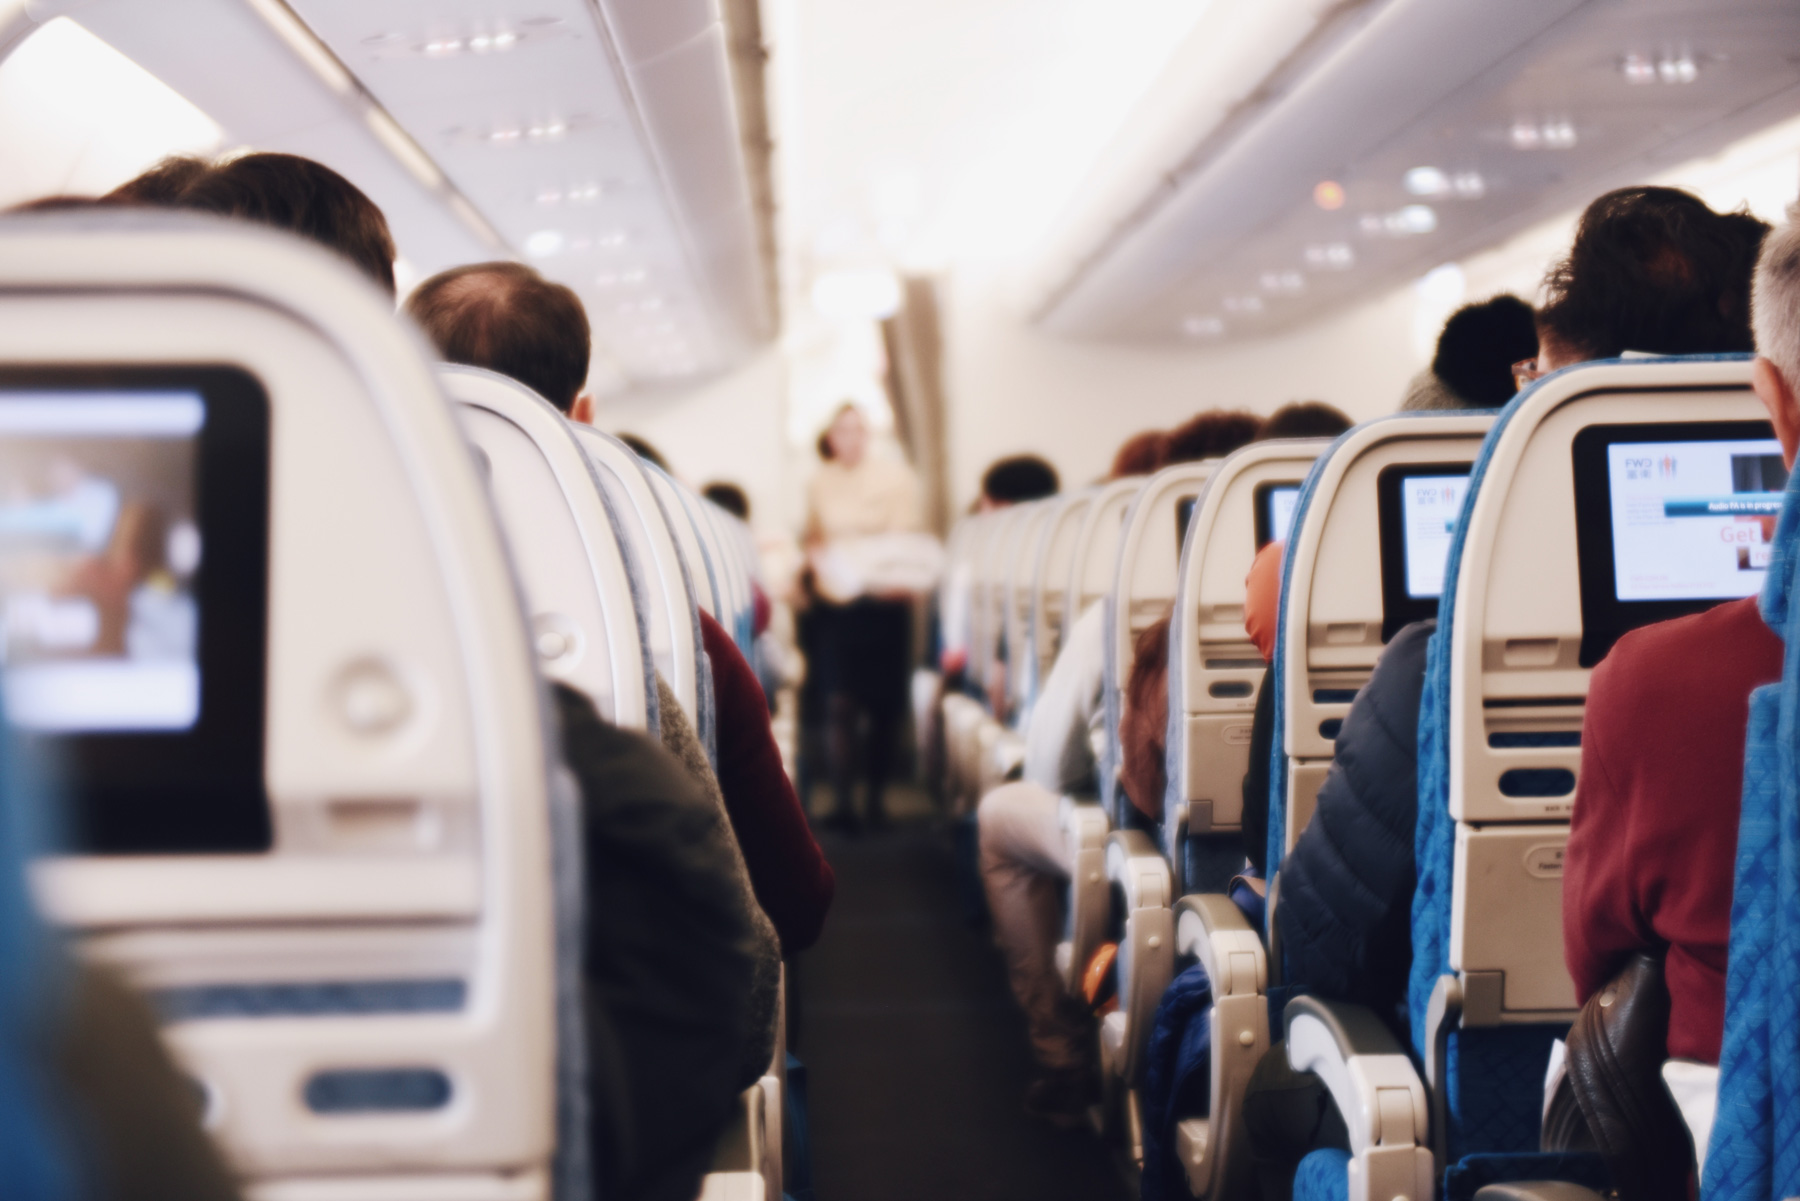 Inside view of airplane